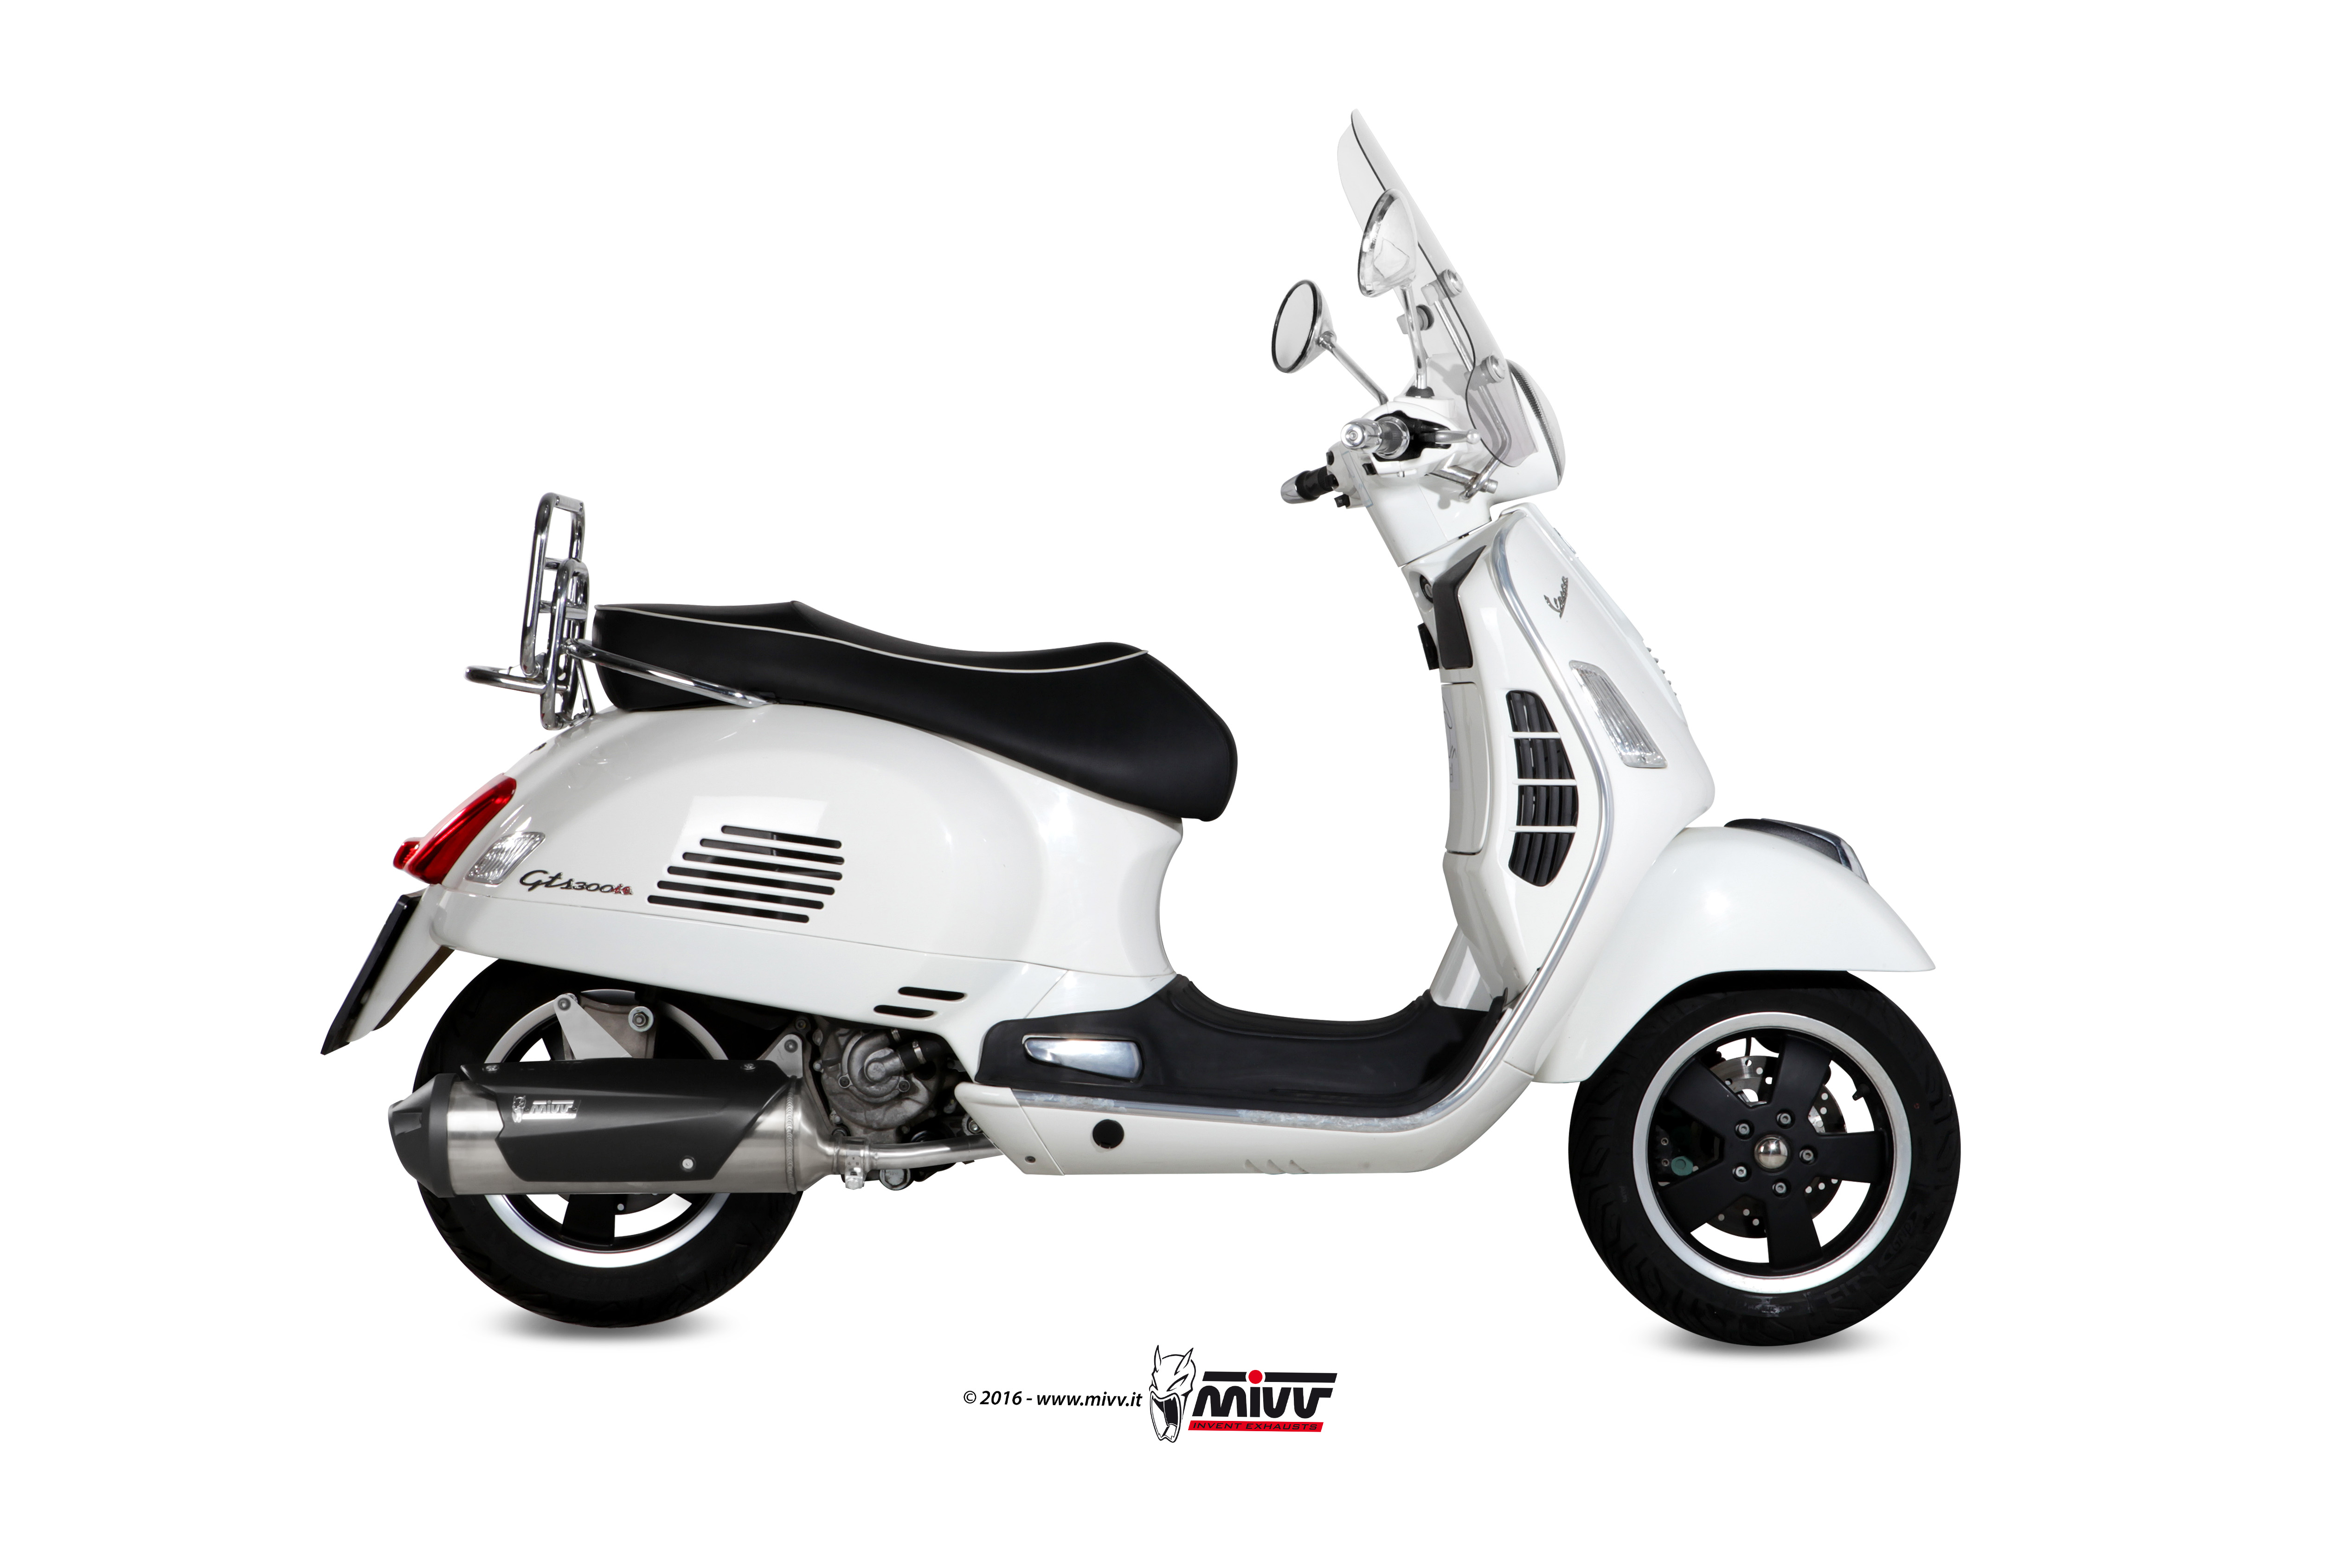 piaggio vespa gts 300 2013 xx full system mivv exhaust urban steel ebay. Black Bedroom Furniture Sets. Home Design Ideas